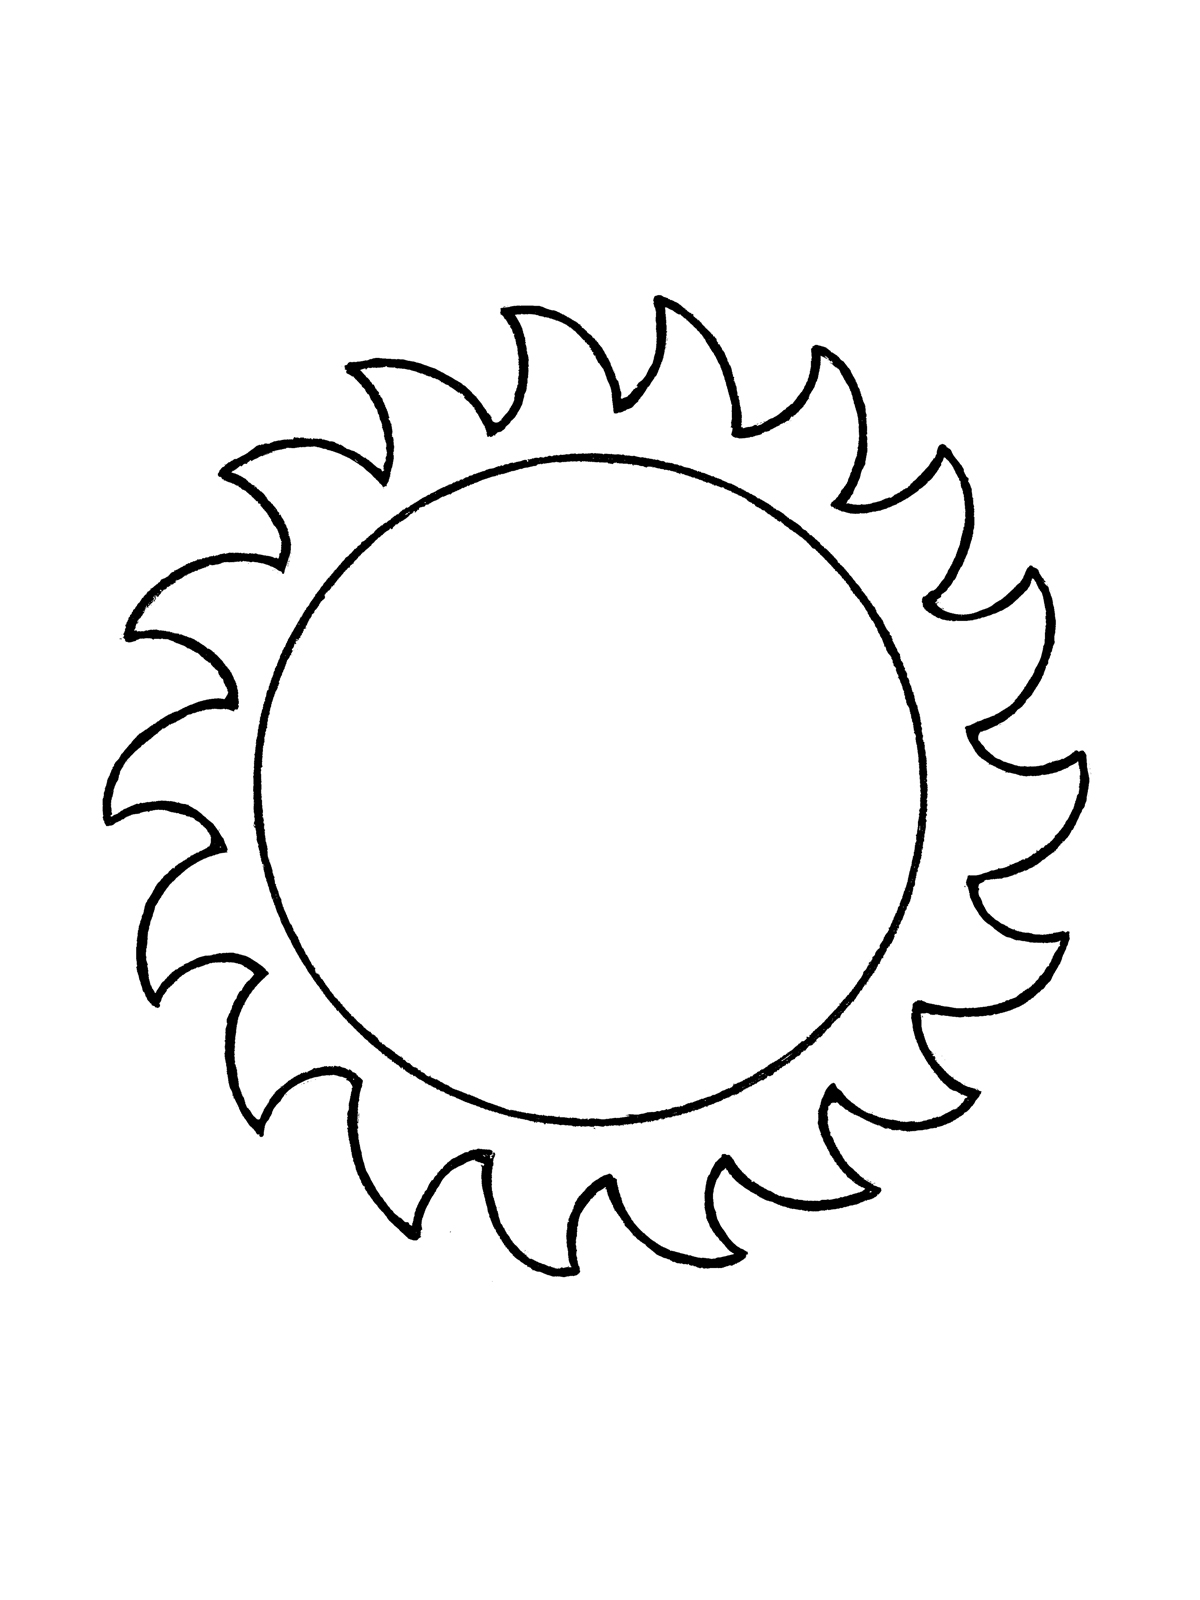 coloring sun clipart black and white sun coloring page twisty noodle coloring sun white black clipart and